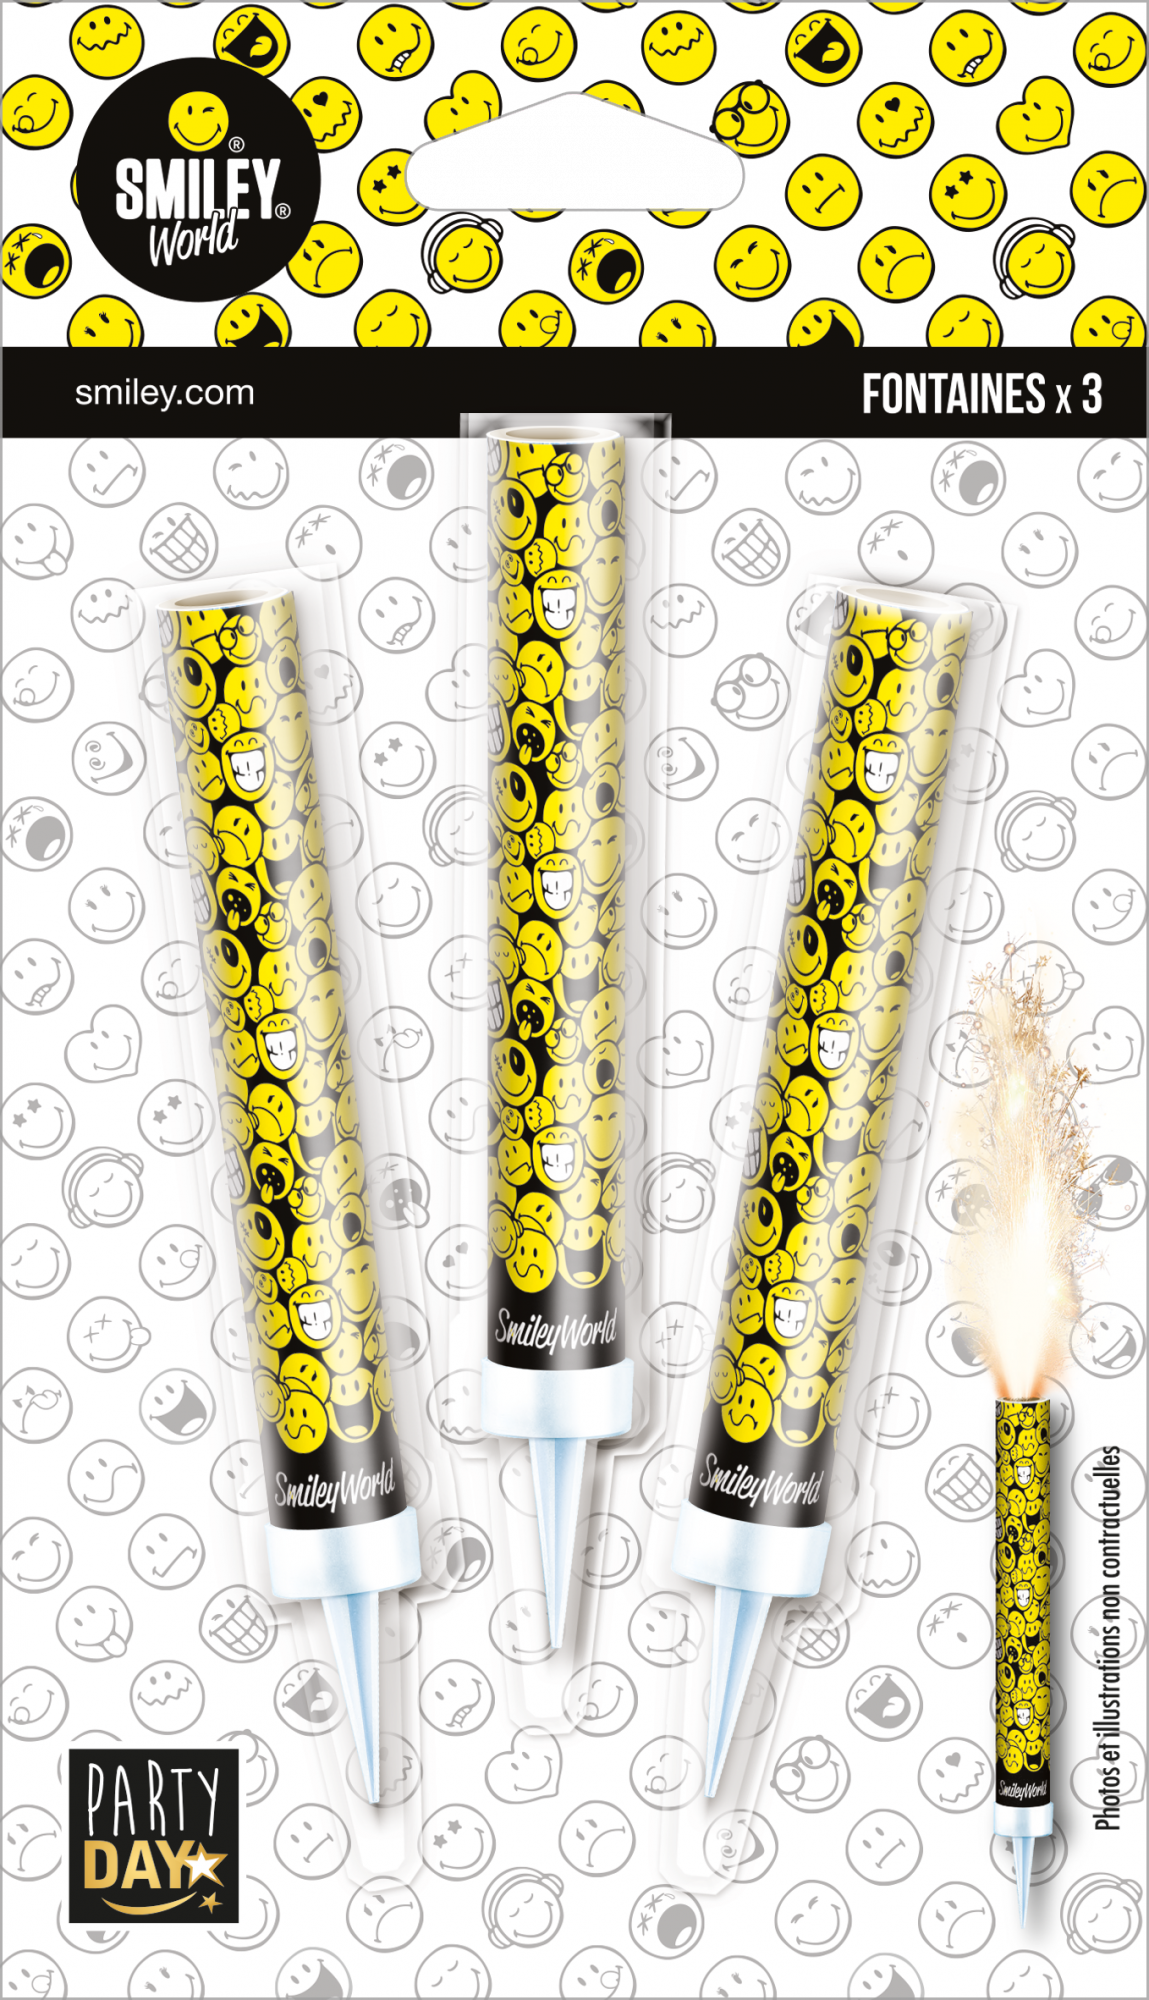 P159774-FONTAINES DES GLACES SMILEY BLACK & YELLOW